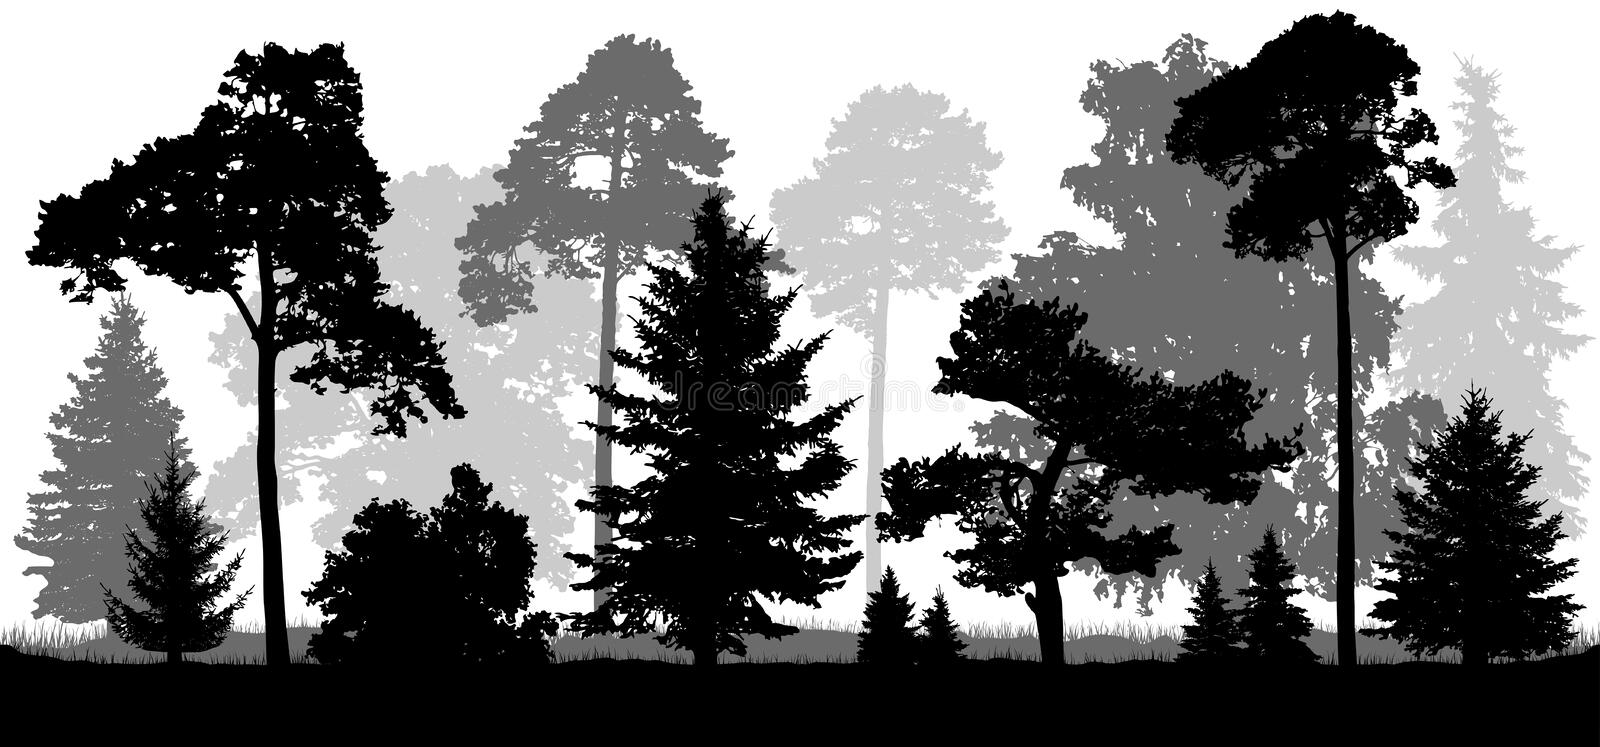 Coniferous forest trees set silhouette. Background of nature.  royalty free illustration